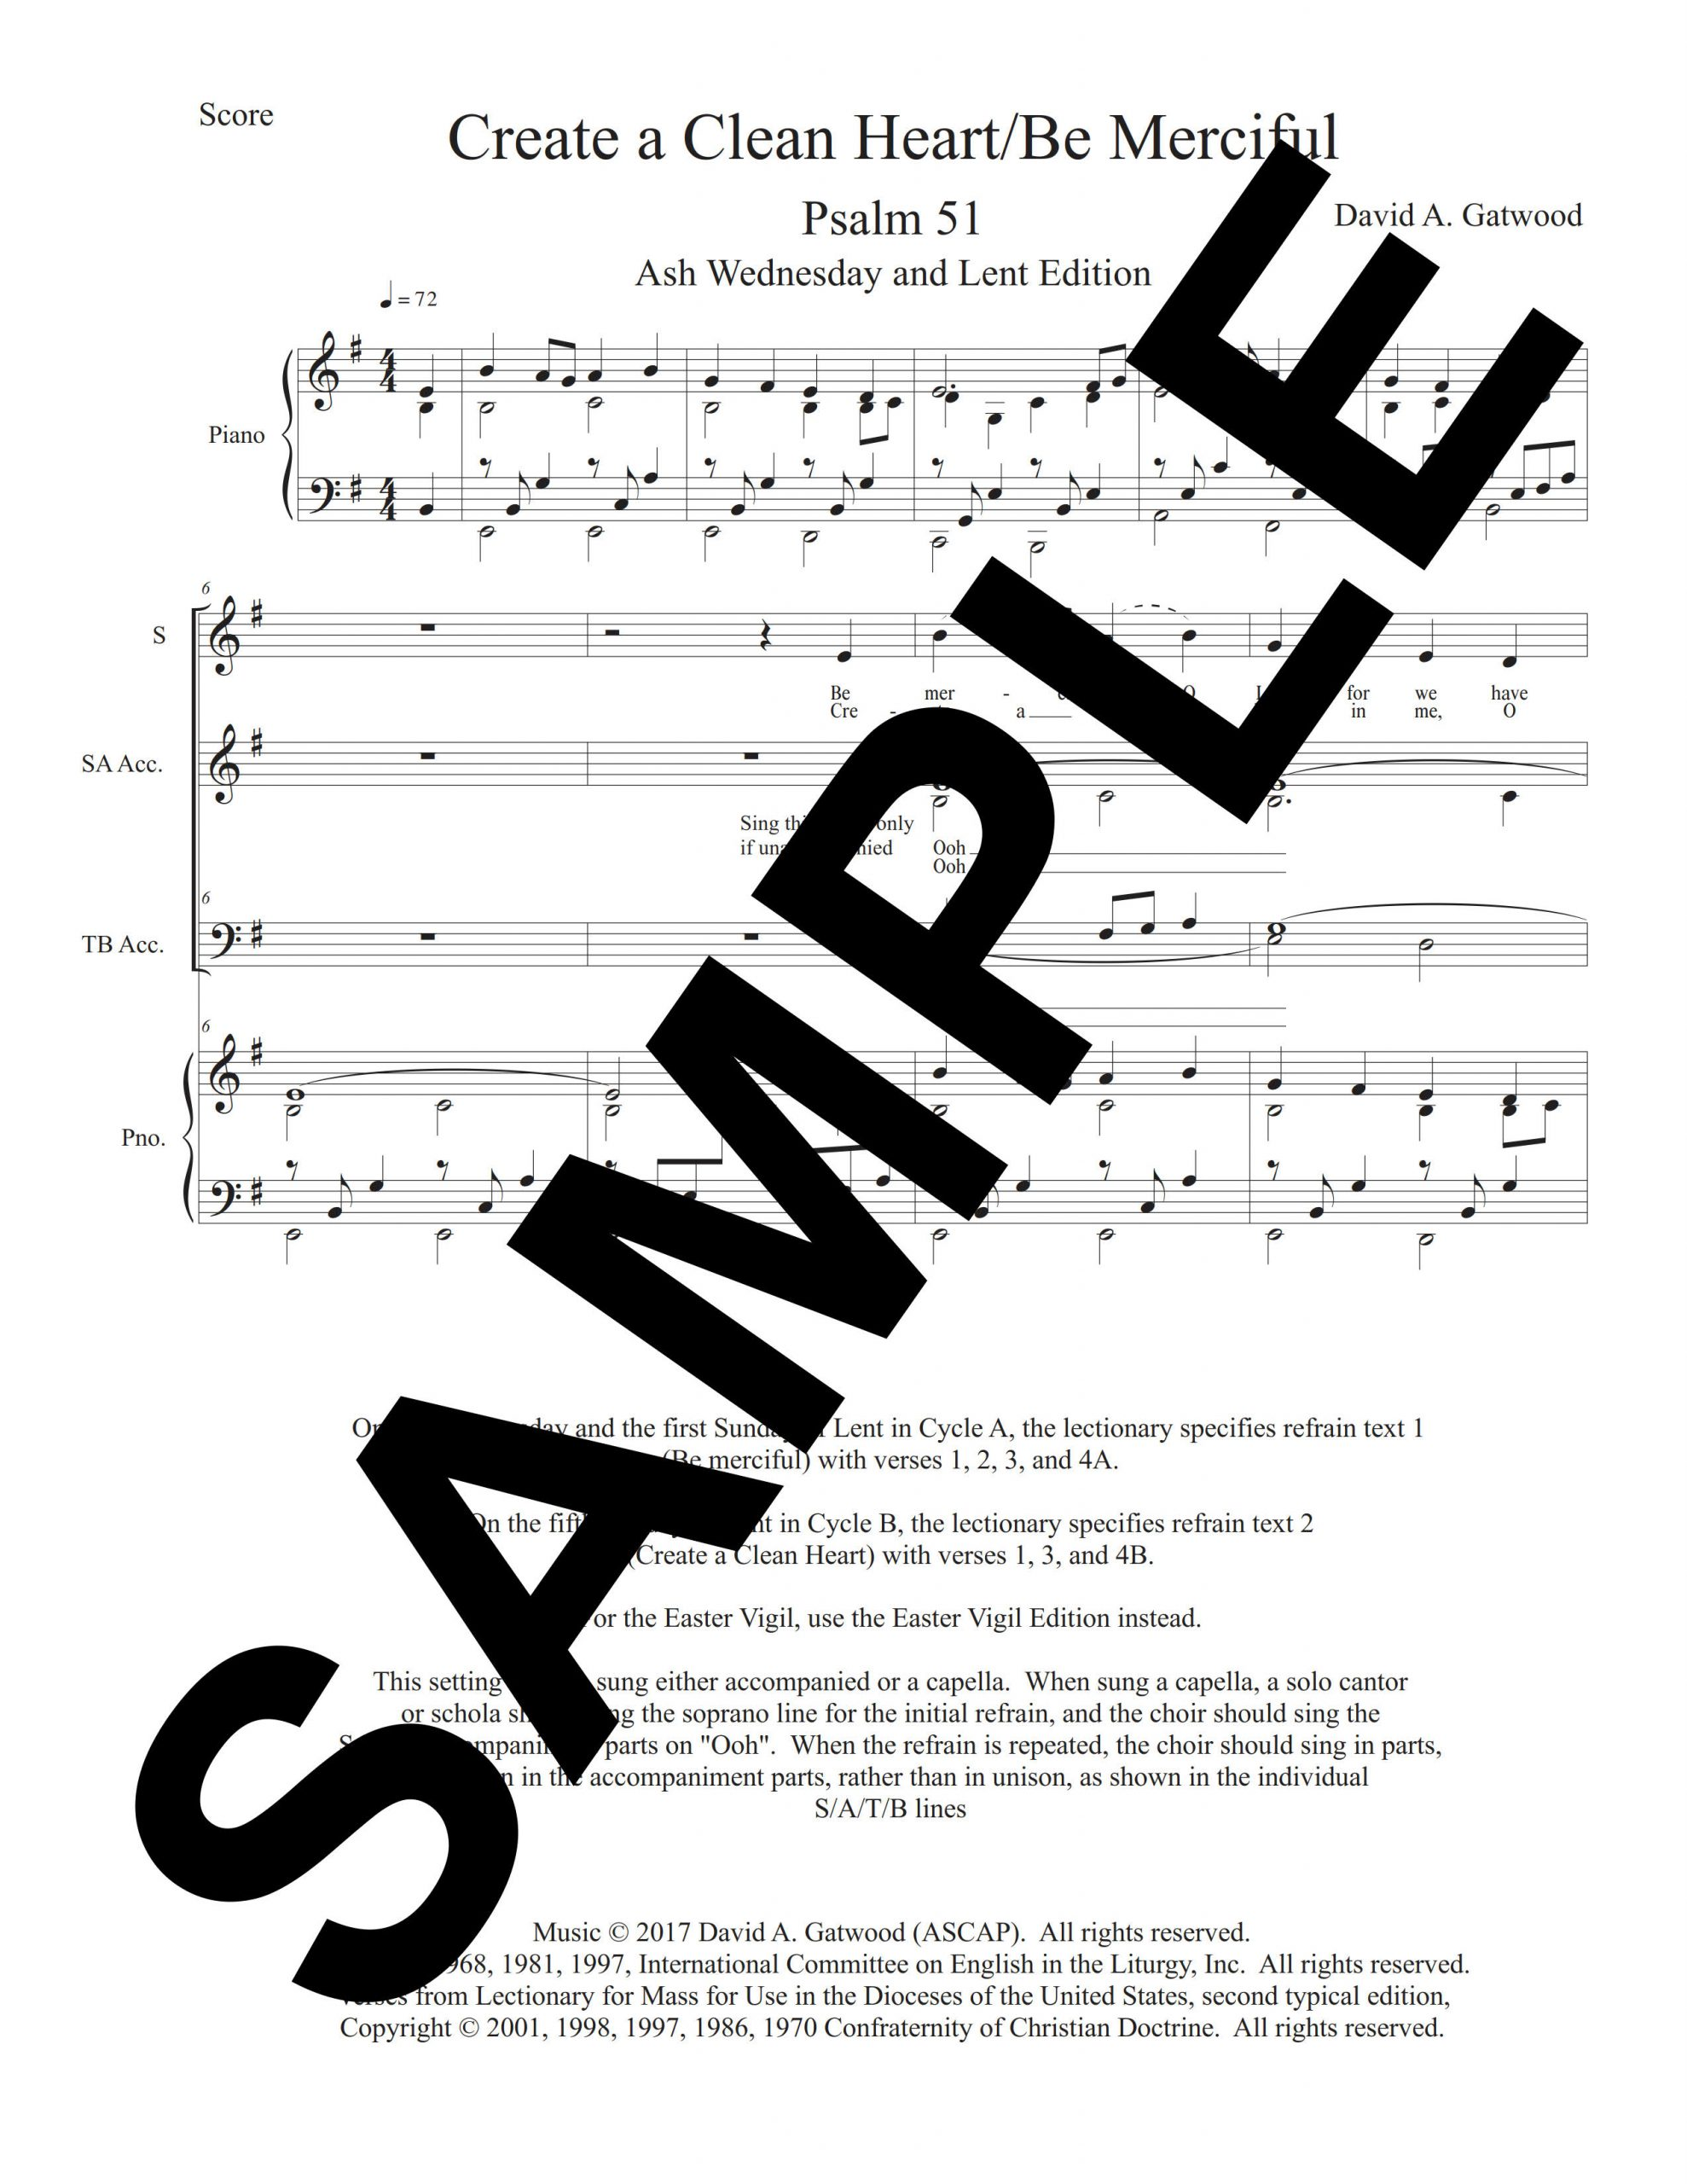 Create A Clean Heart Psalm 51 Sample Score scaled